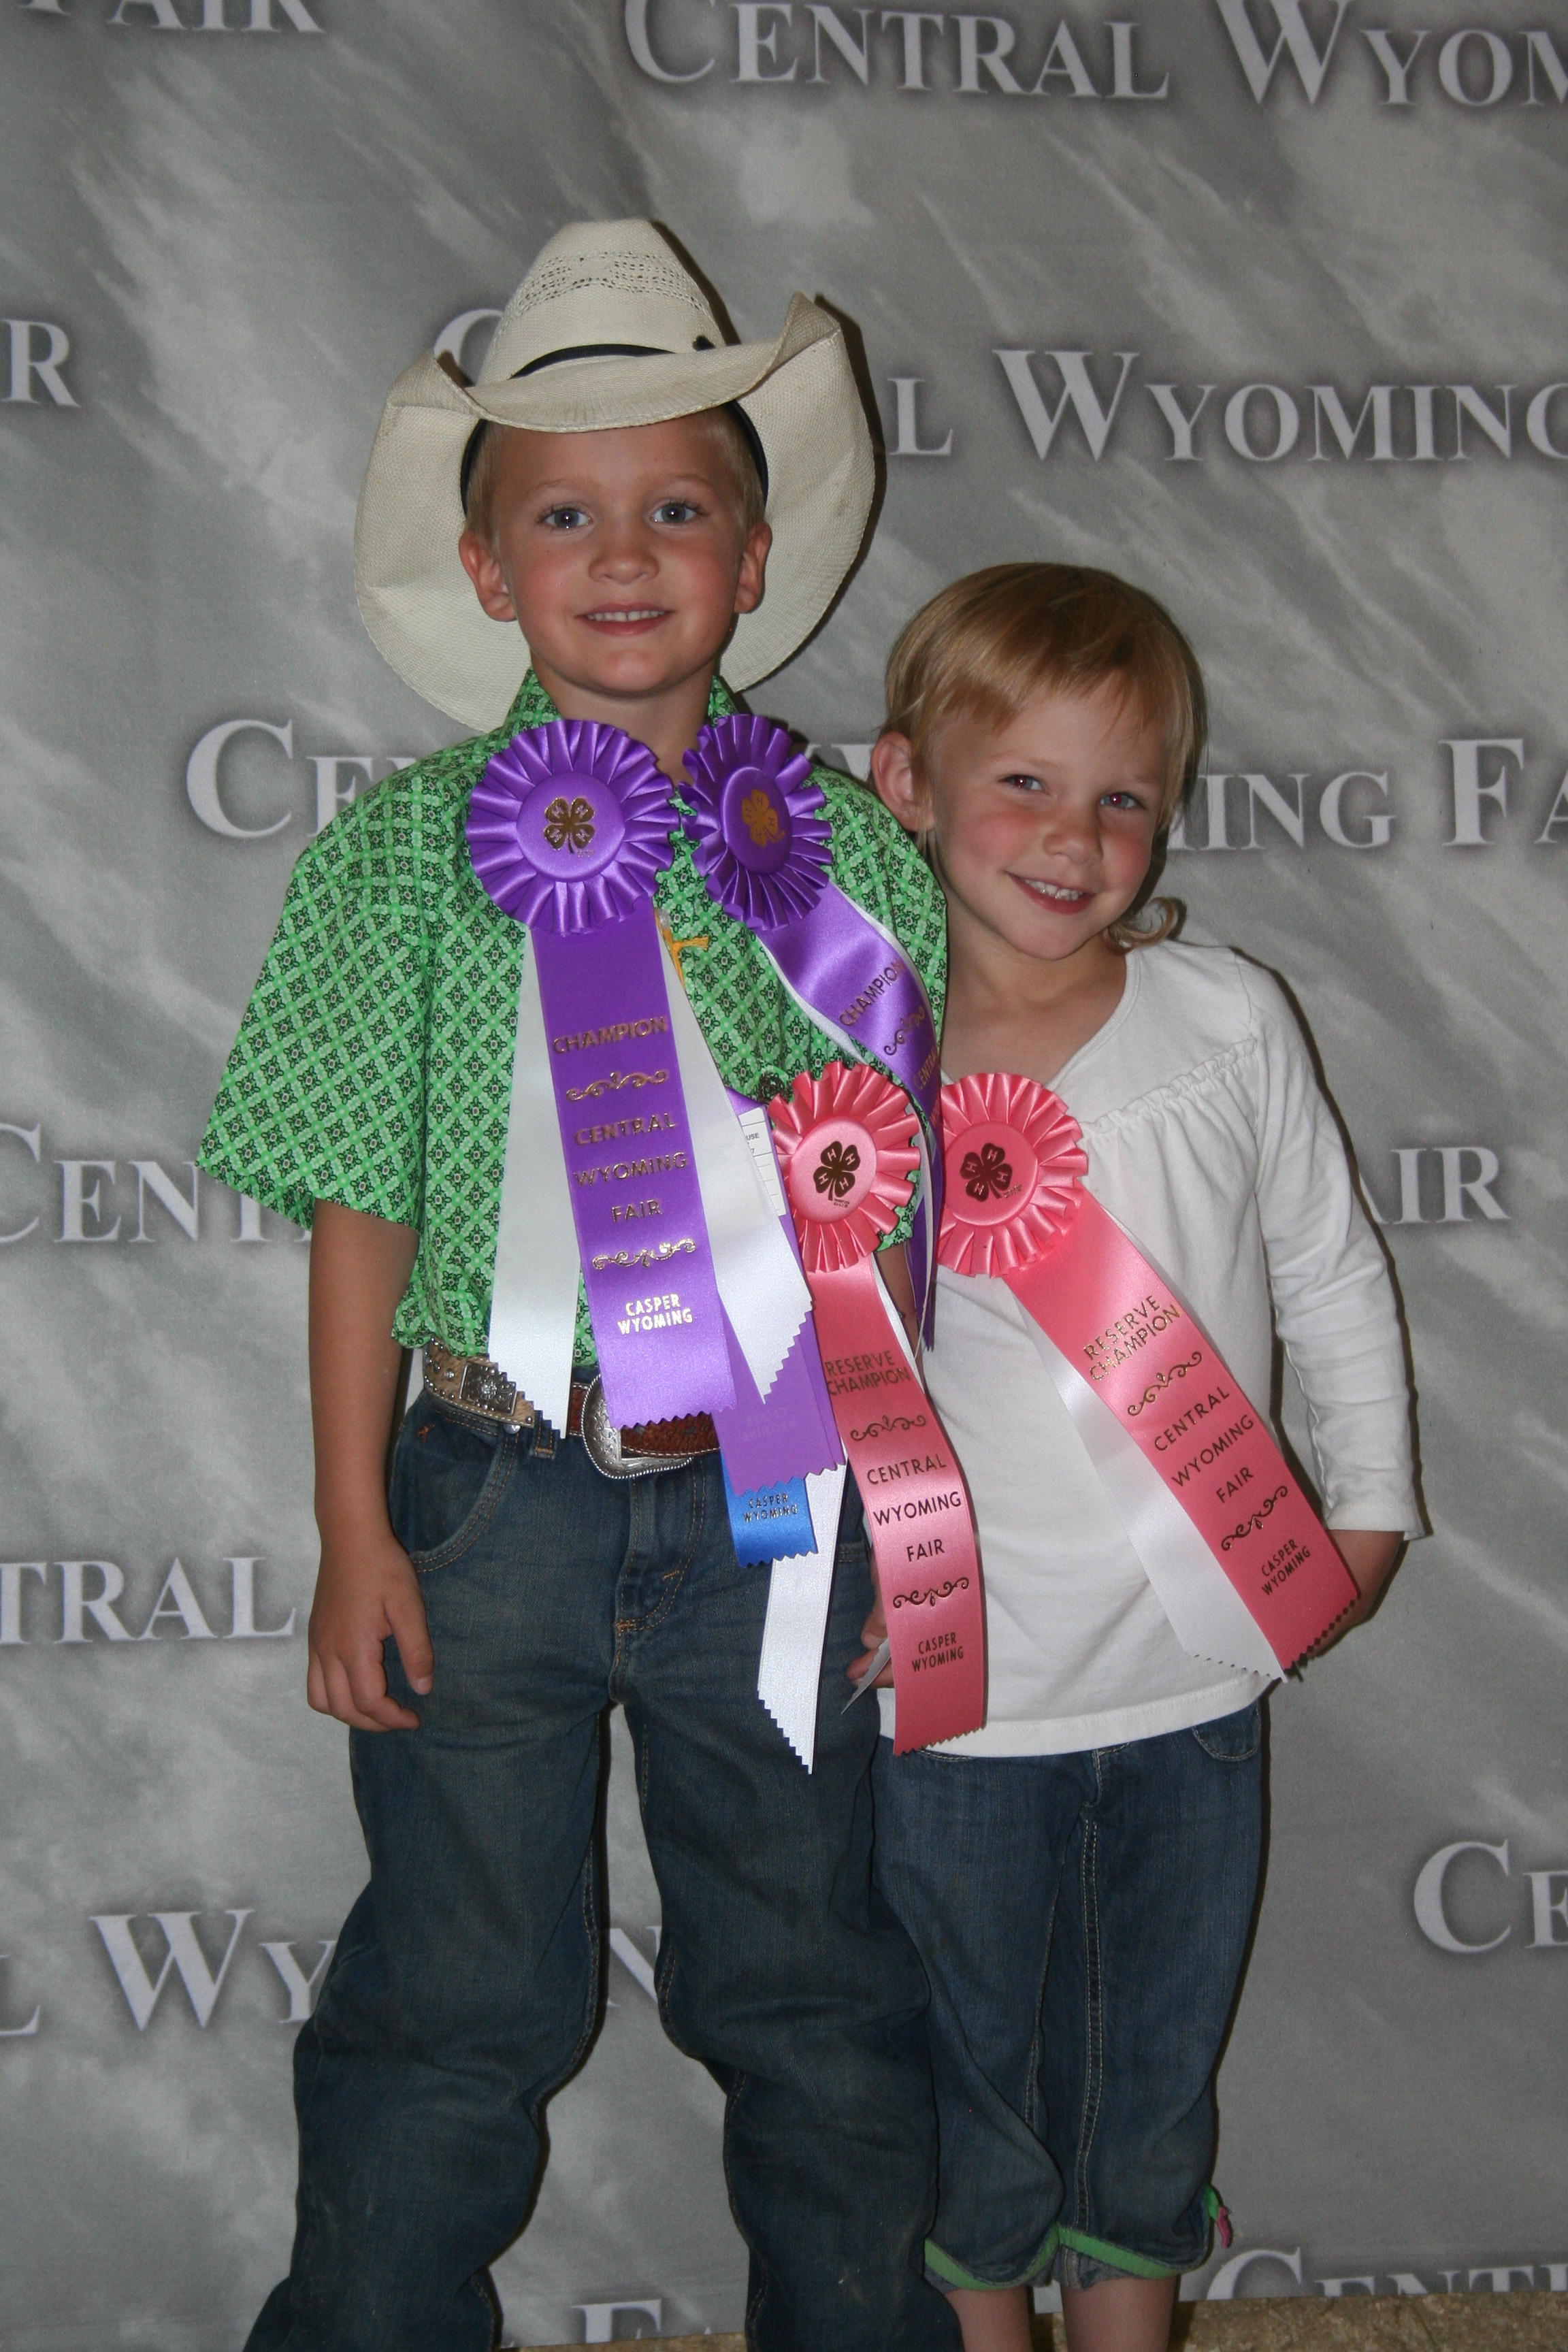 4-H Youth_120723135